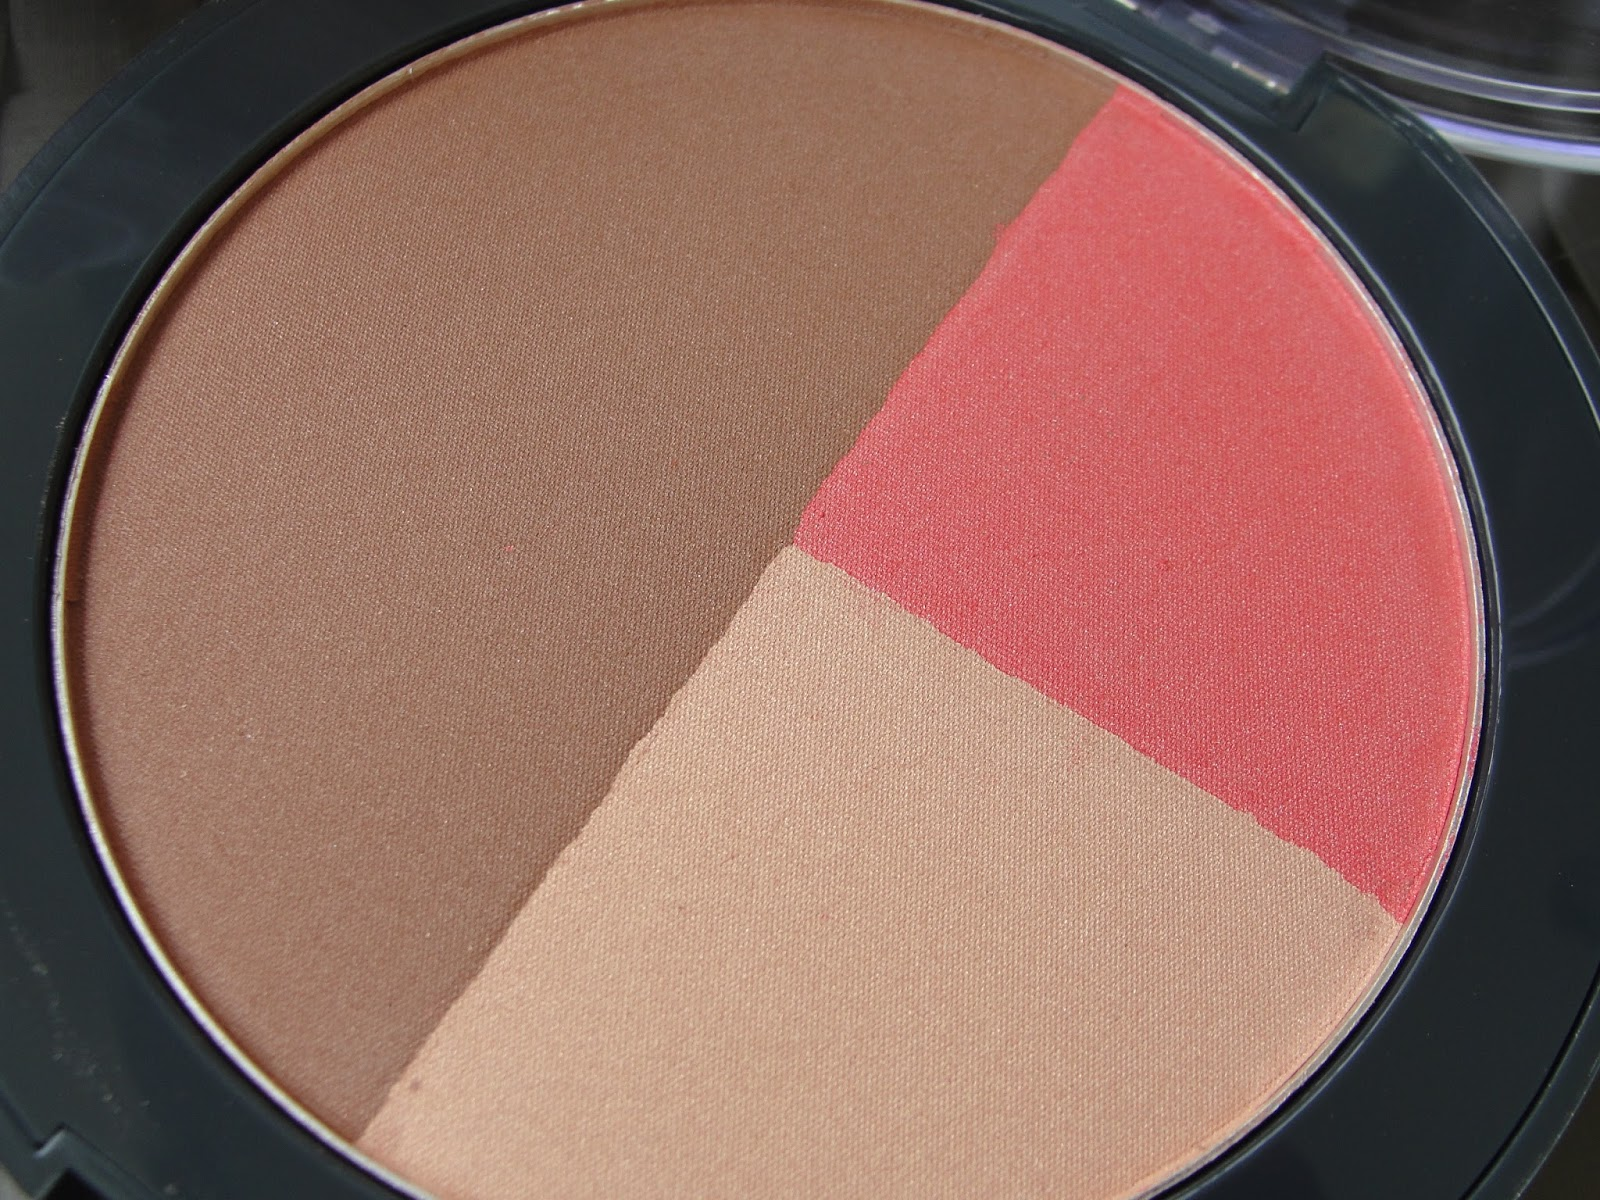 Your Most Beautiful You Antiaging Face Palette by IT Cosmetics #18